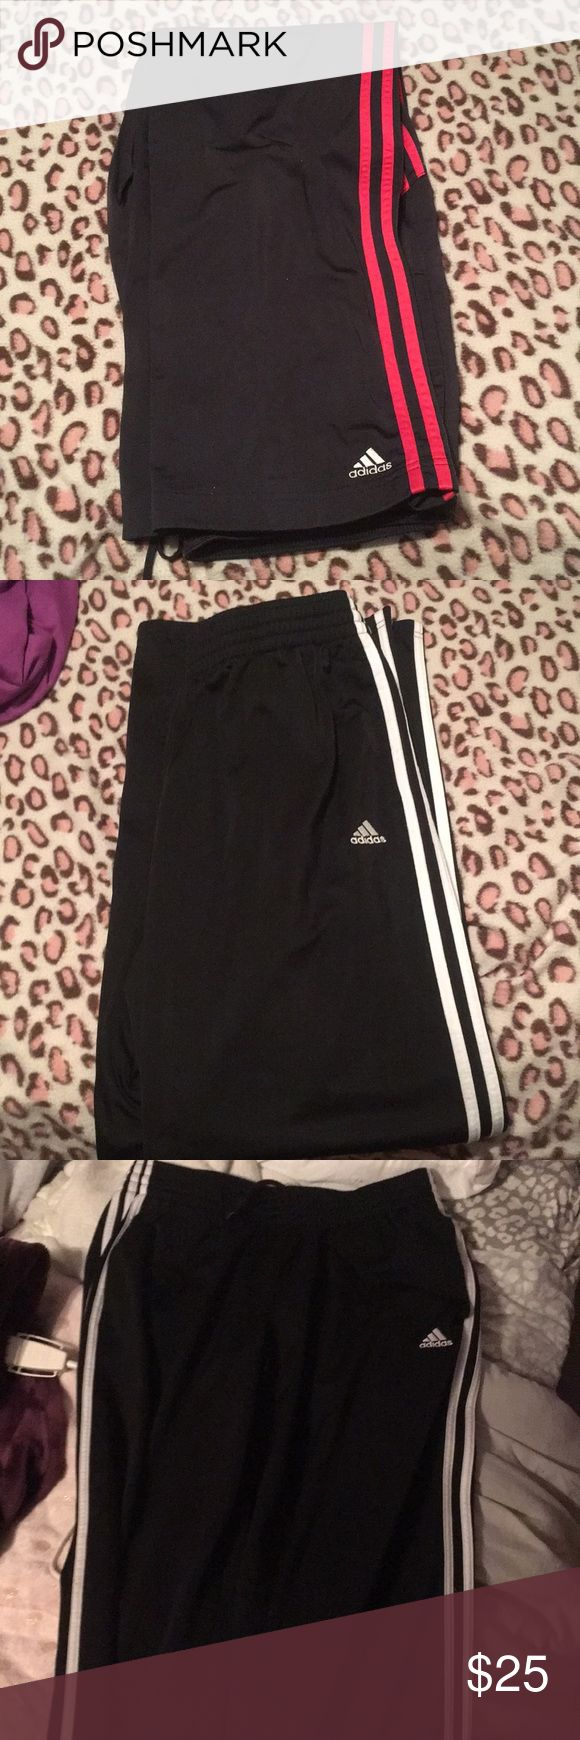 Like new 2 pairs of women's adidas track pants Like new women's adidas jogging pants 2pairs adidas Pants Track Pants & Joggers